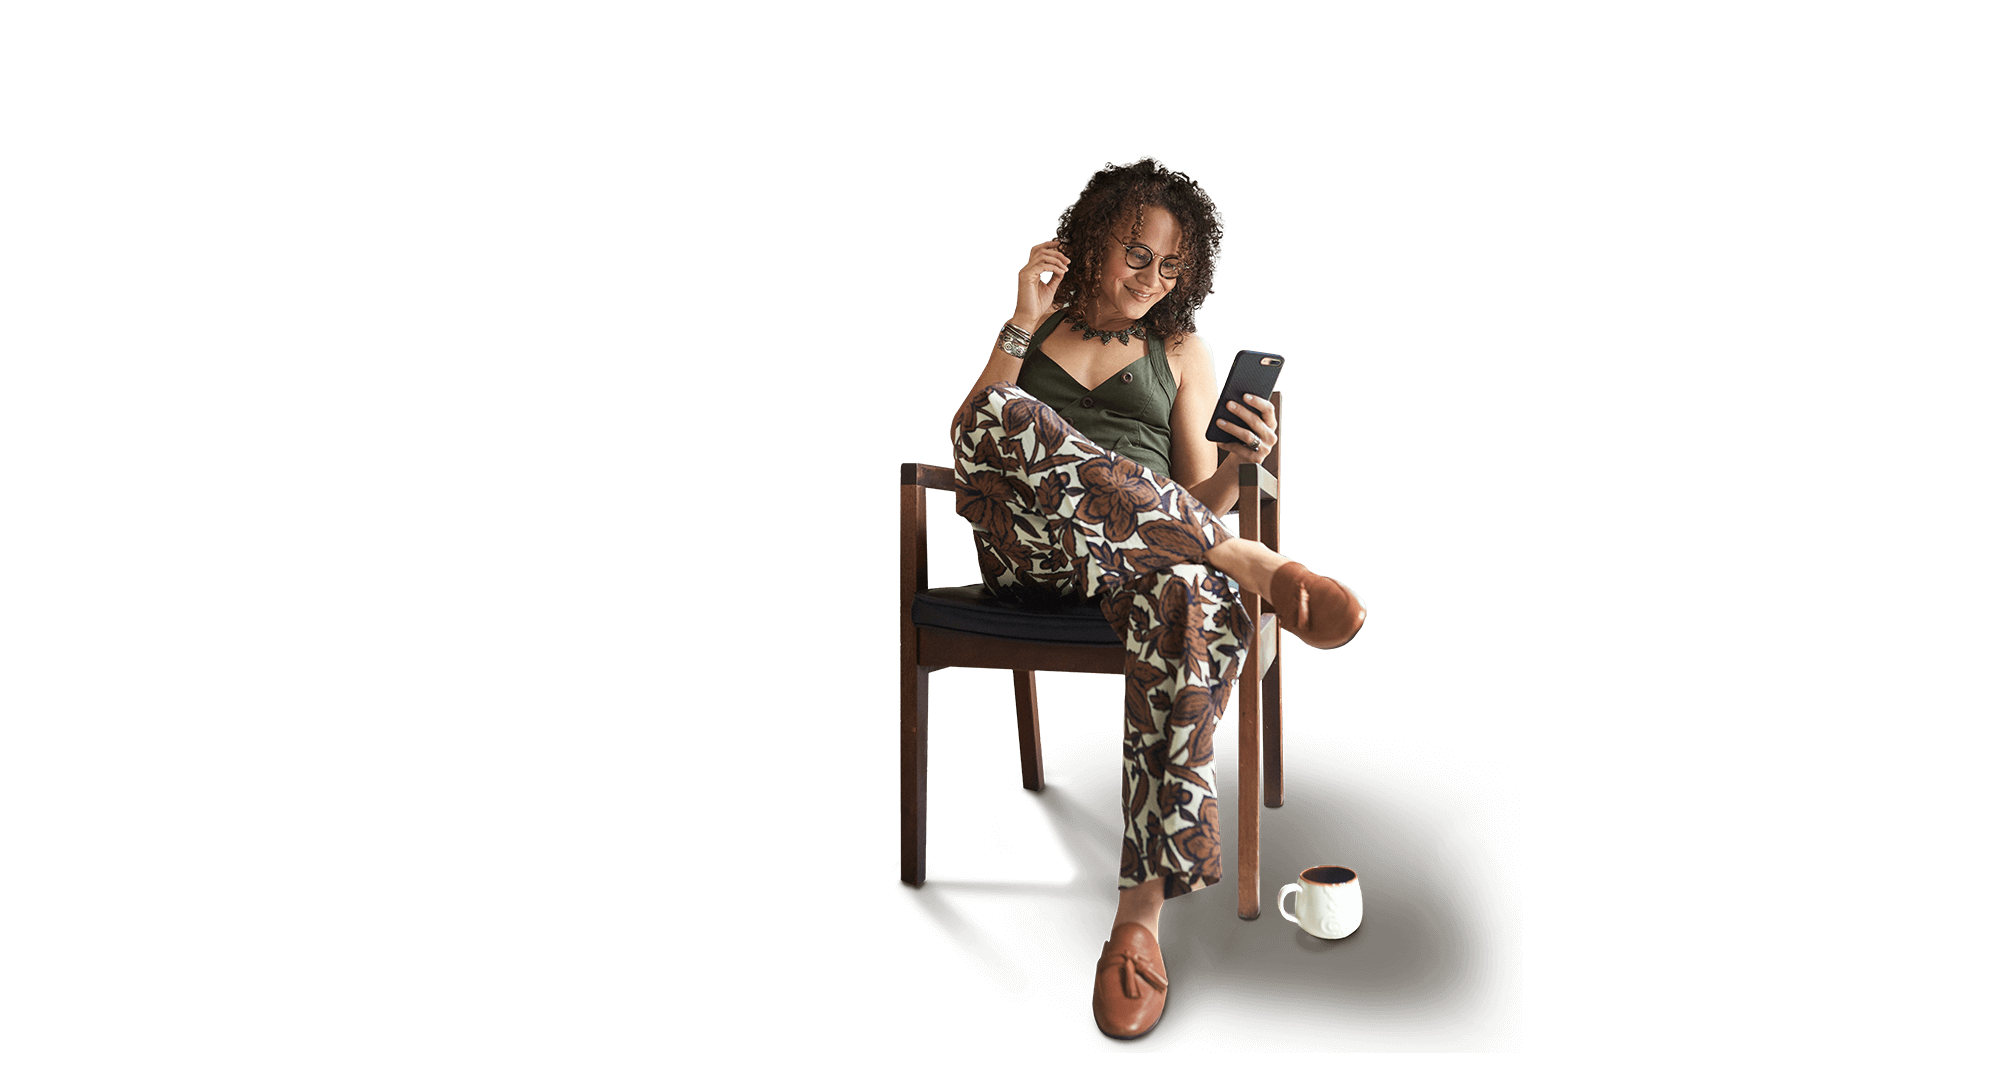 Mixed woman smiling at her phone drinking tea